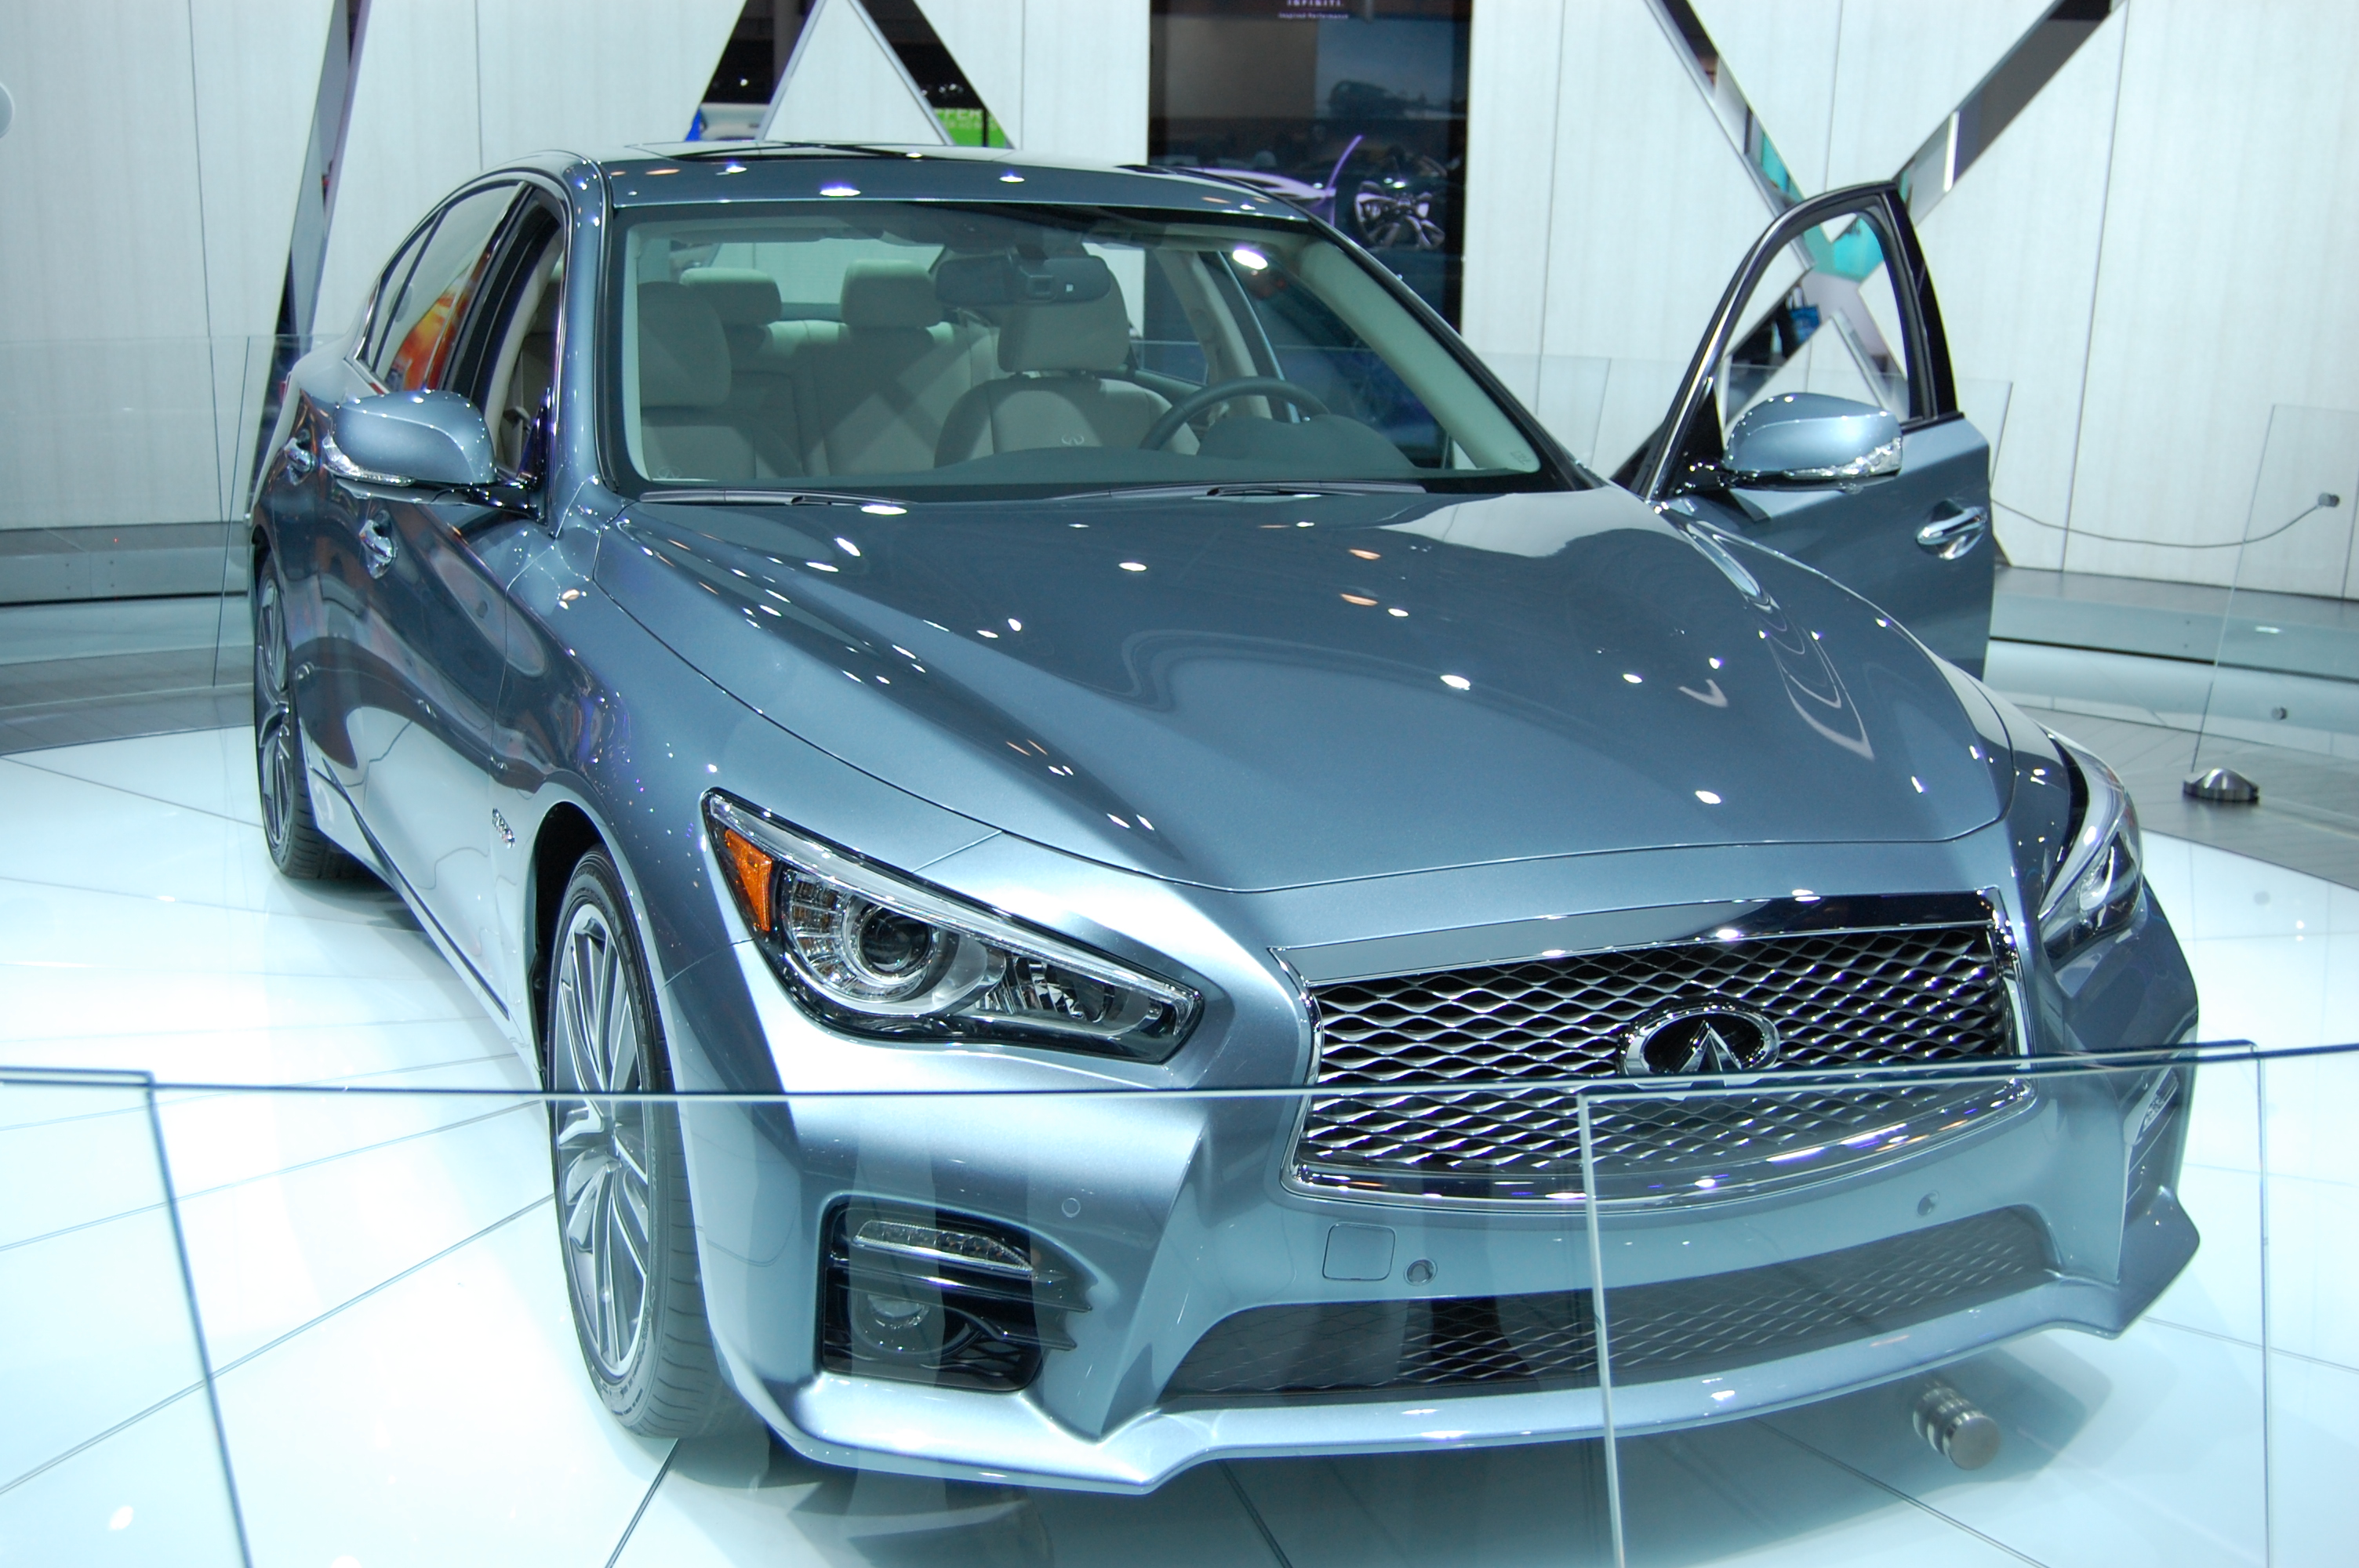 2014 infiniti q50 hybrid sport i by hardrocker78 on. Black Bedroom Furniture Sets. Home Design Ideas